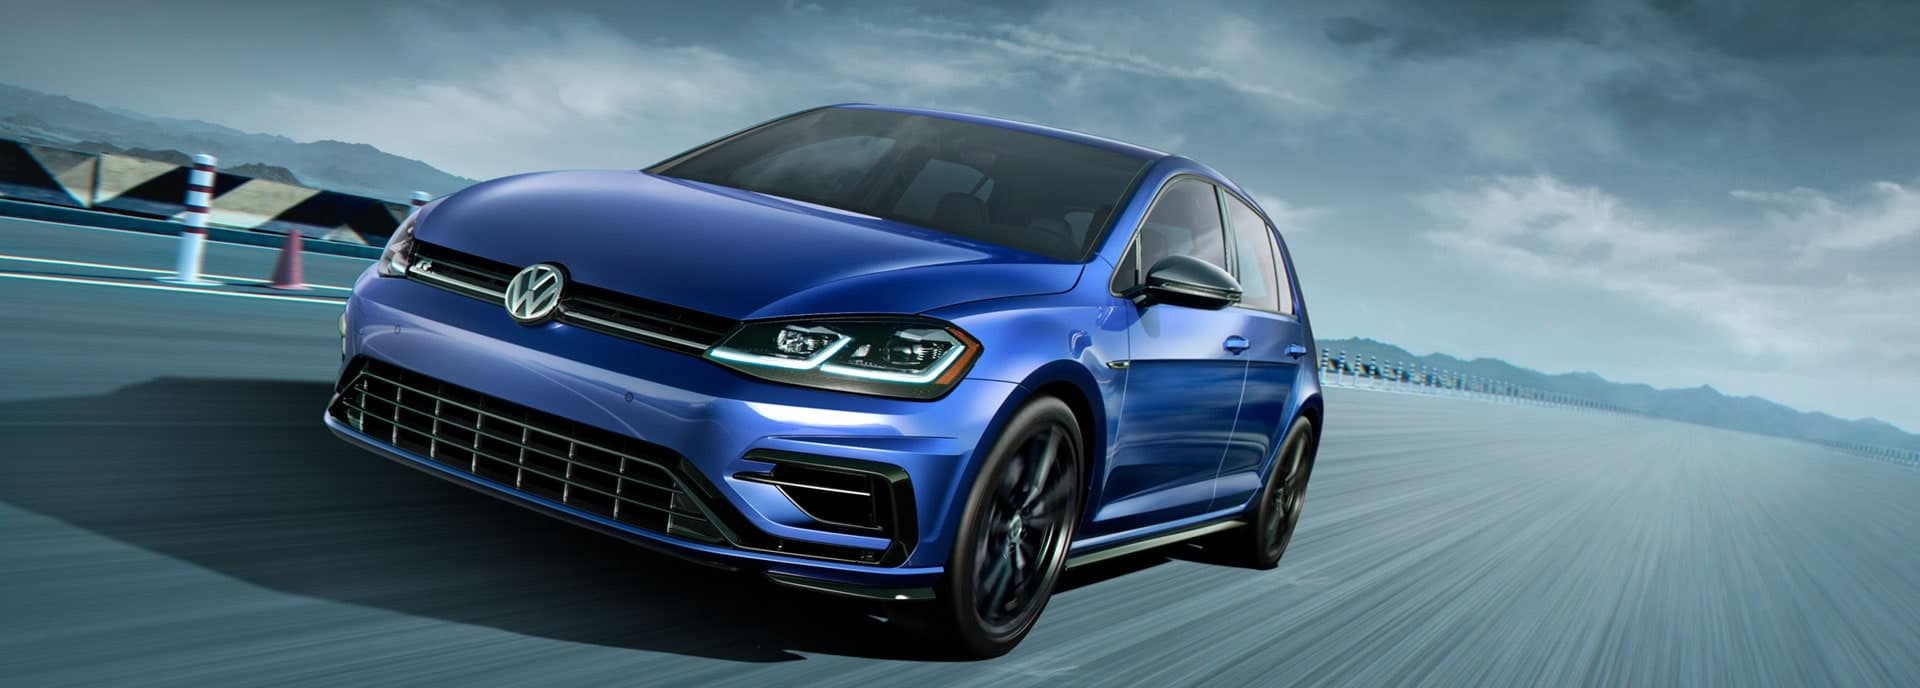 Dynamic photo of a blue 2019 VW Golf R on a race track